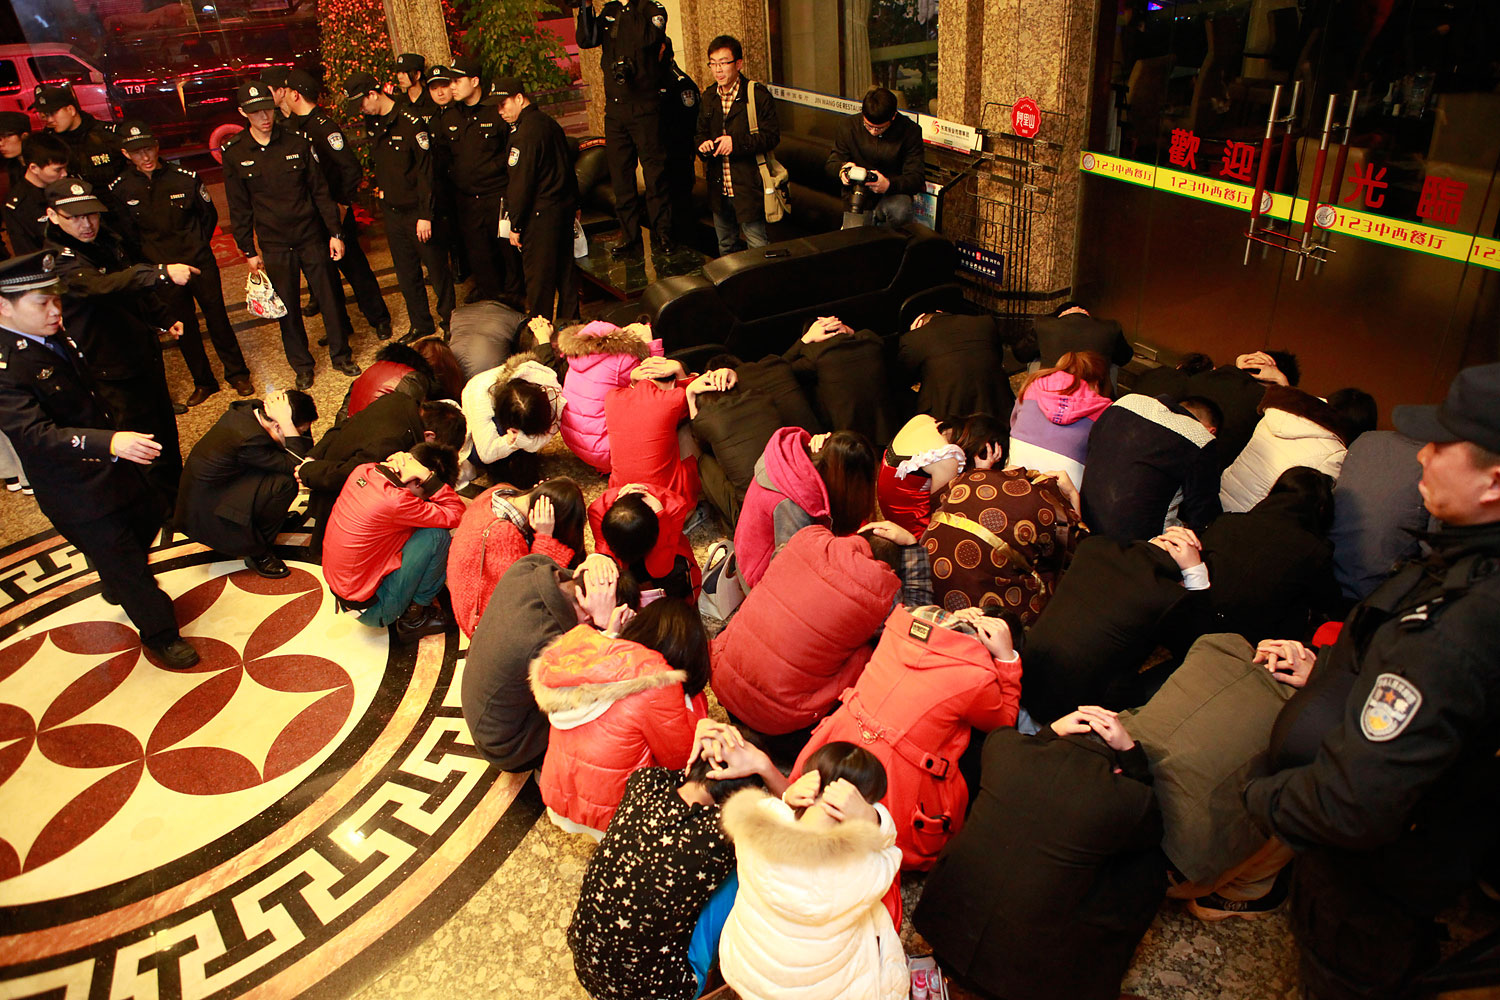 Chinese police rounding up alleged sex workers and clients at an entertainment center in Dongguan, in southern China's Guangdong province, on Feb. 9, 2014